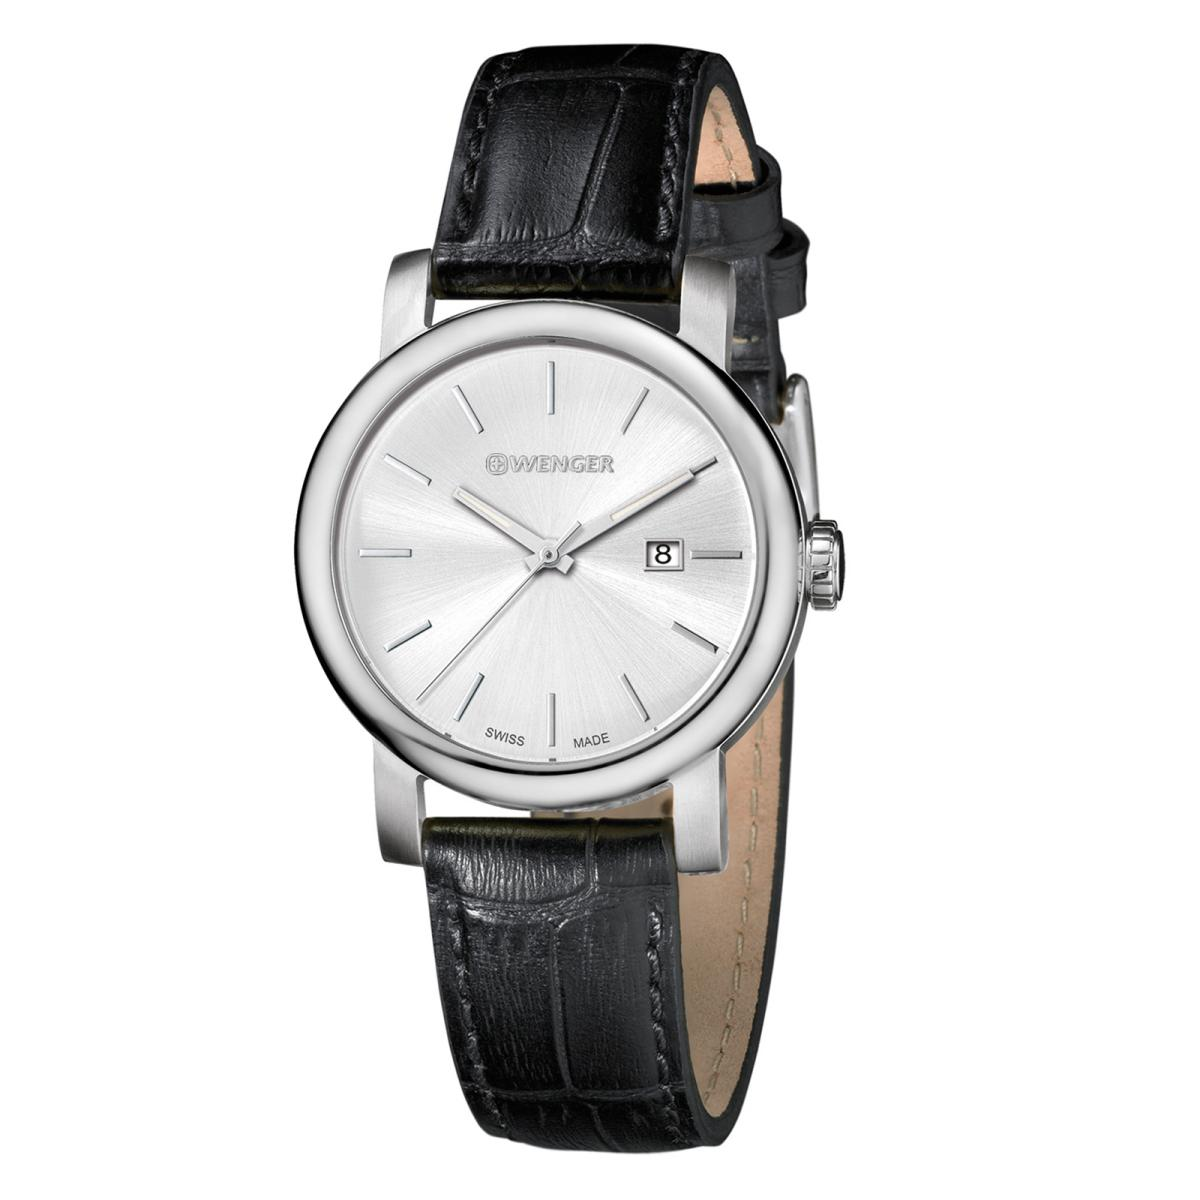 931eb801ee9a Reloj Wenger - 01.1021.117 - MUJER - Time Square